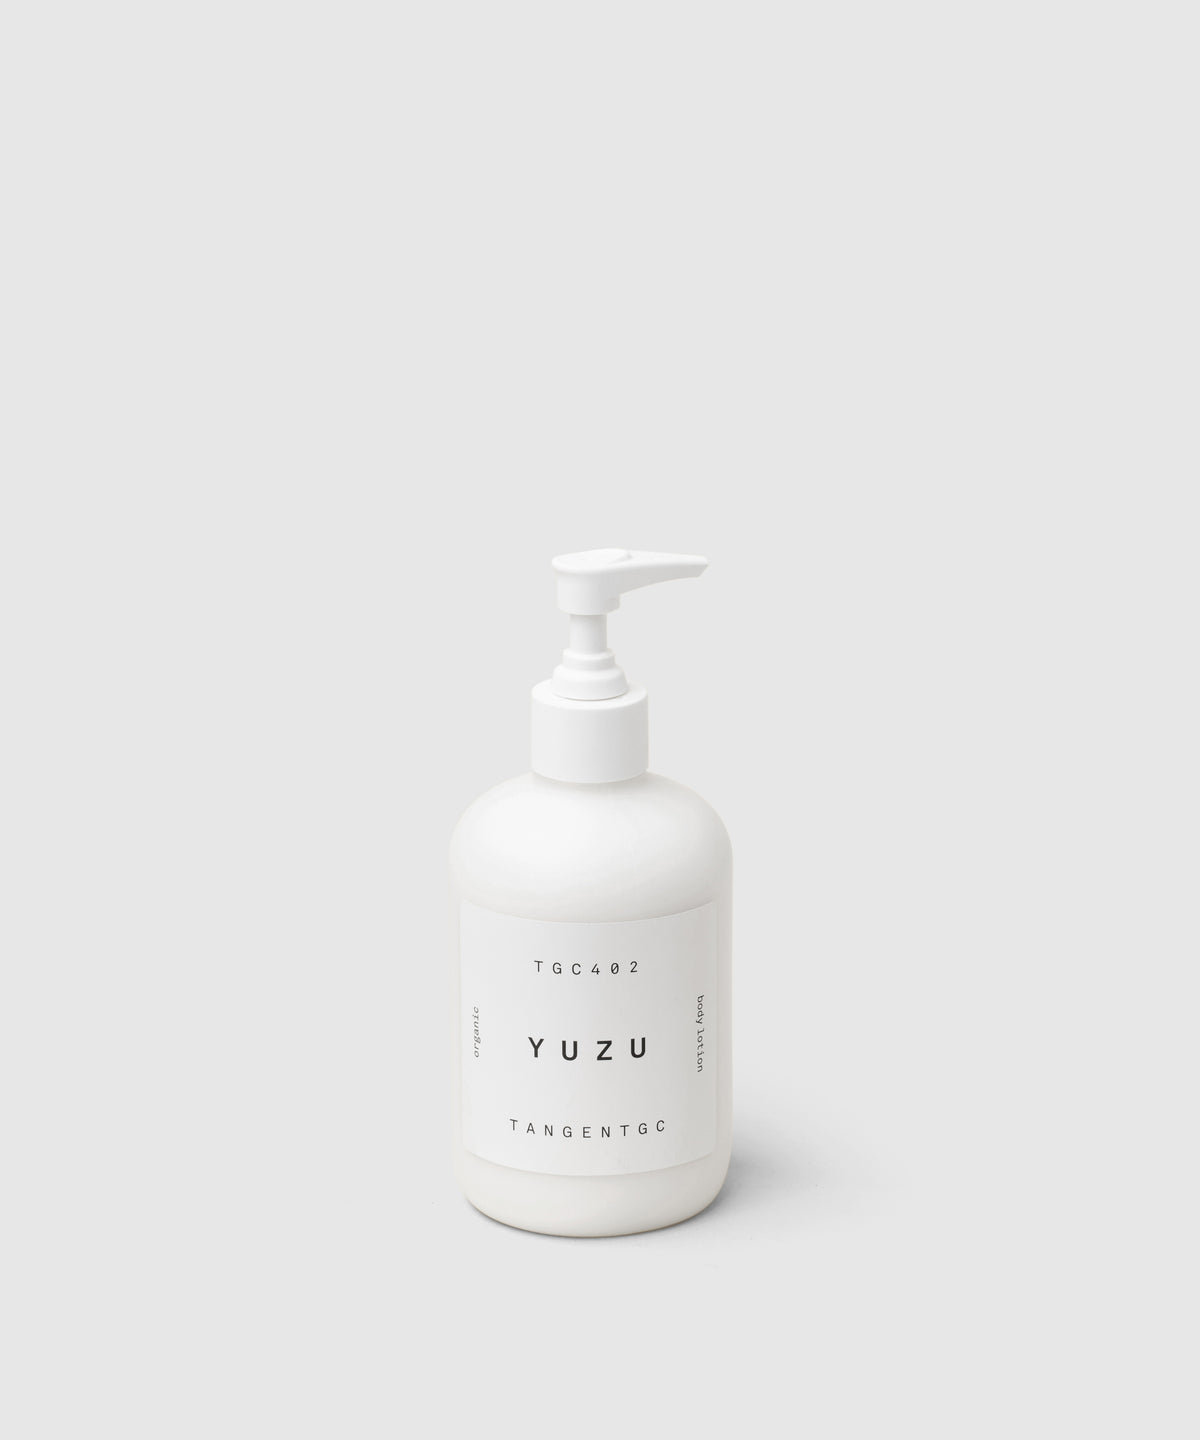 Nourishing Yuzu Body Cream